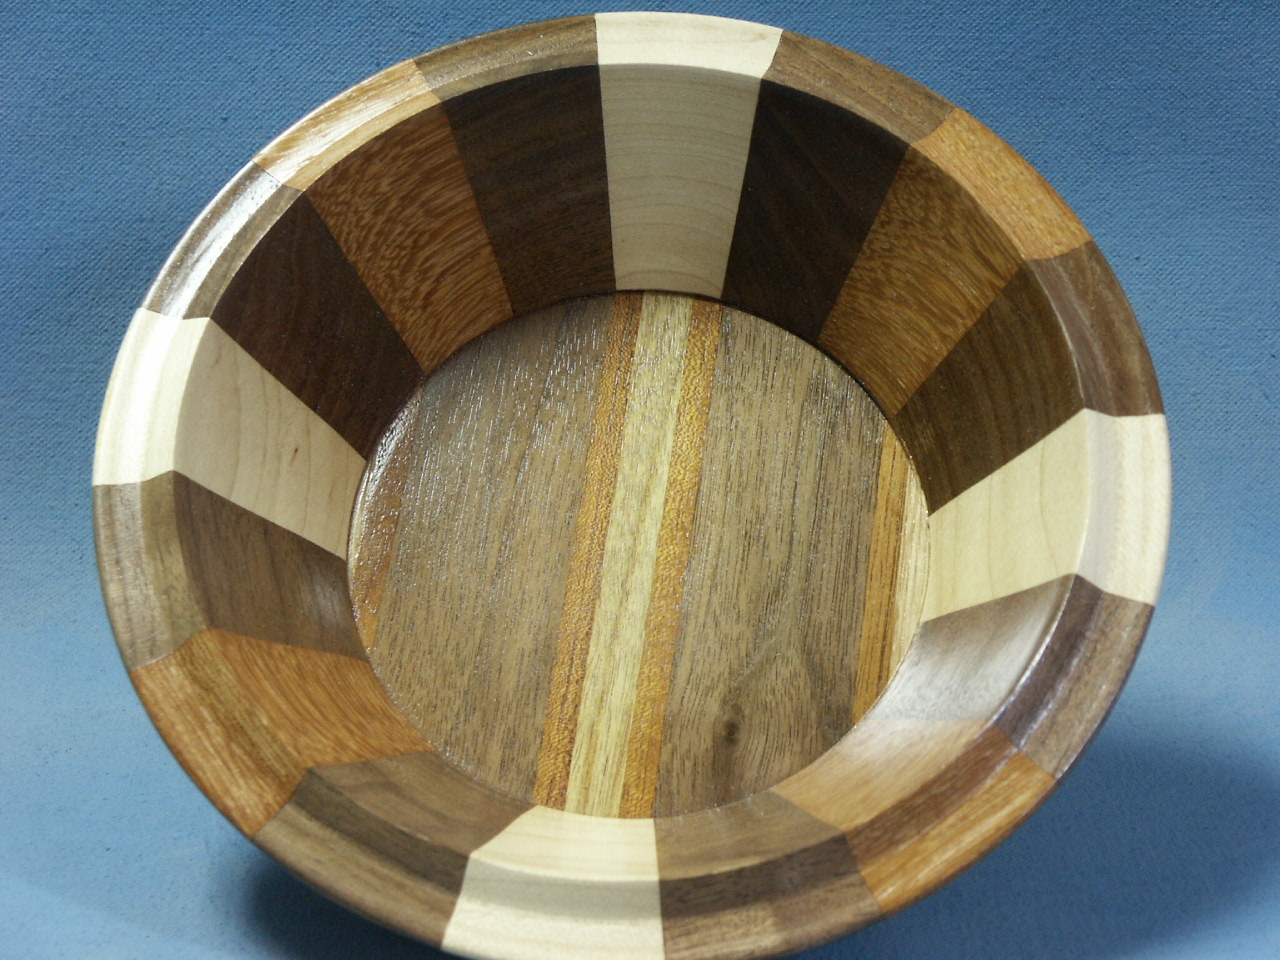 Walnut Segmented Bowl